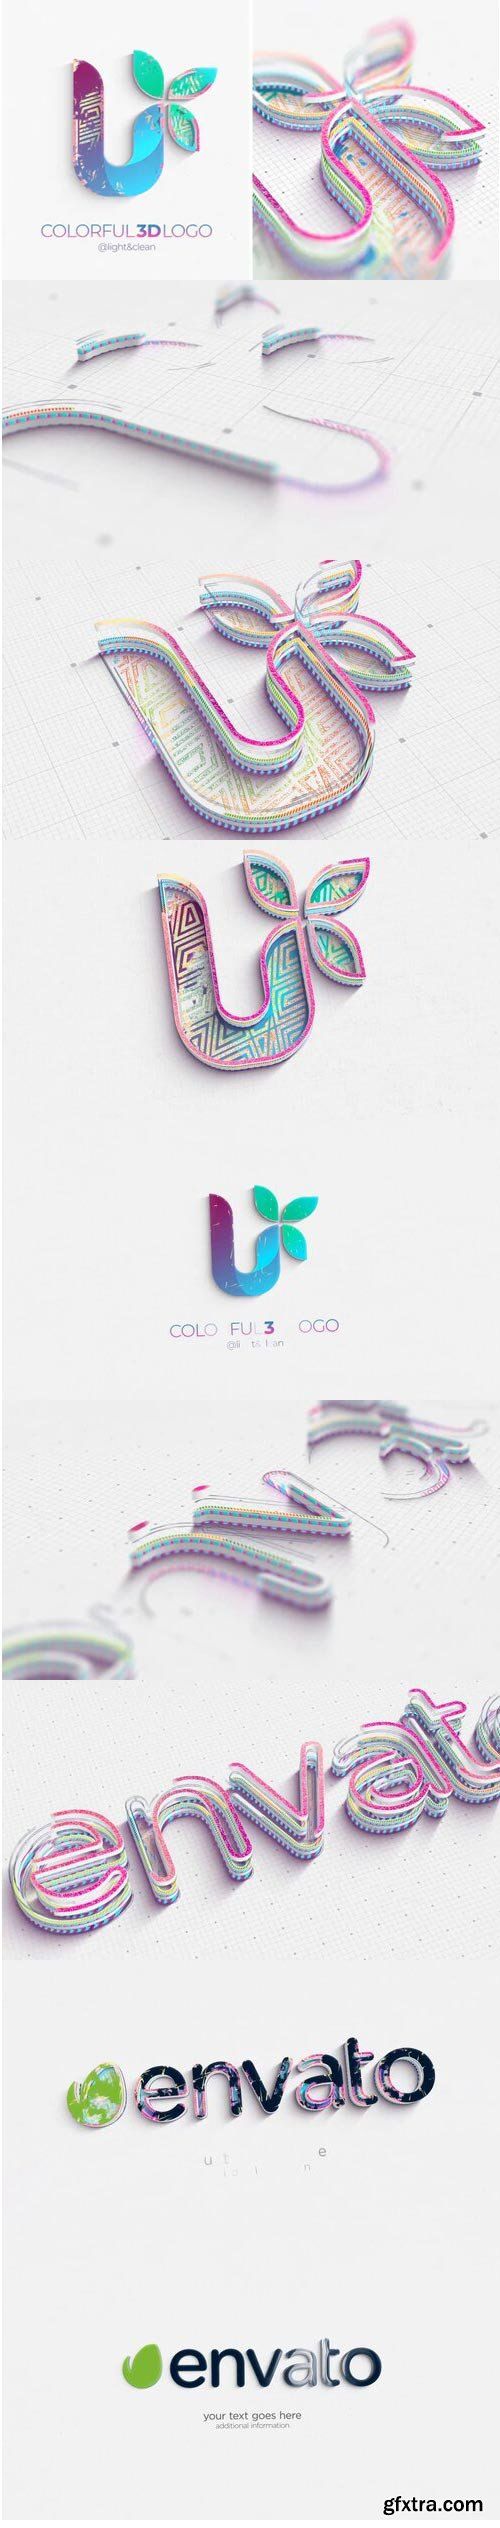 Videohive - Colorful 3D Logo Reveal - 33021950